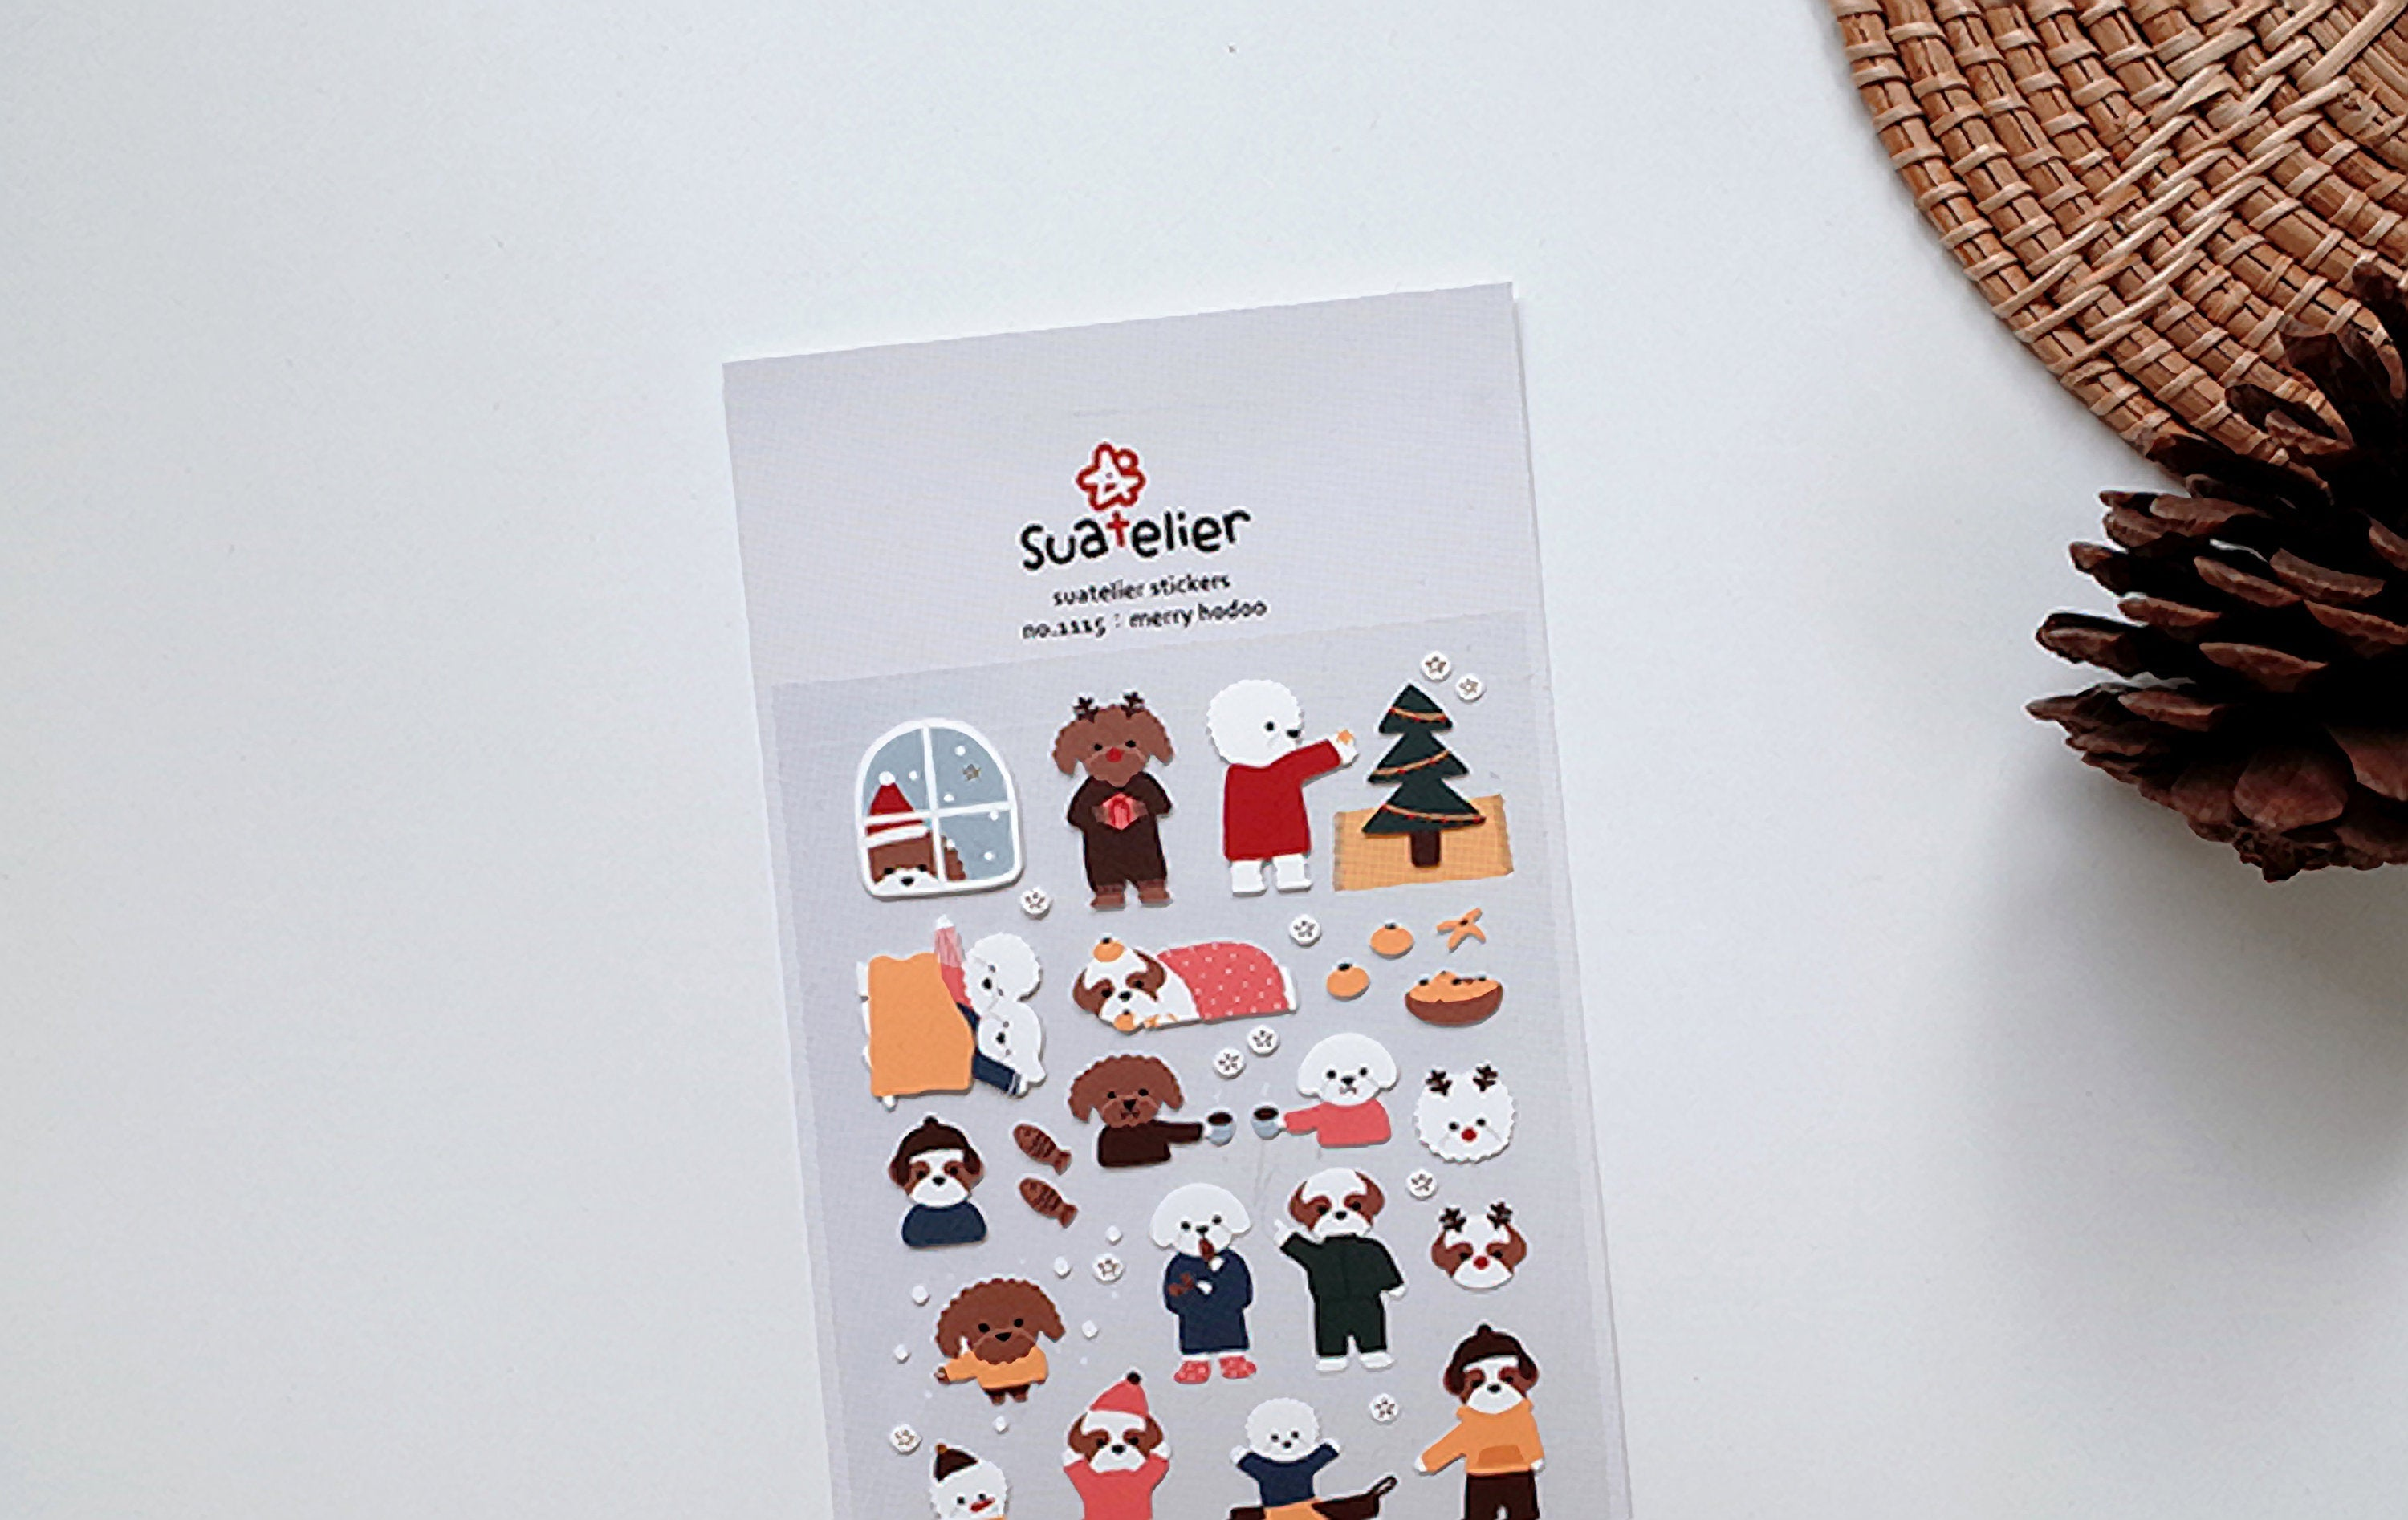 Suatelier Sonia PVC Transparent Stickers 1115 | Merry Hodoo Christmas Holiday Stickers - The Stationery Life!